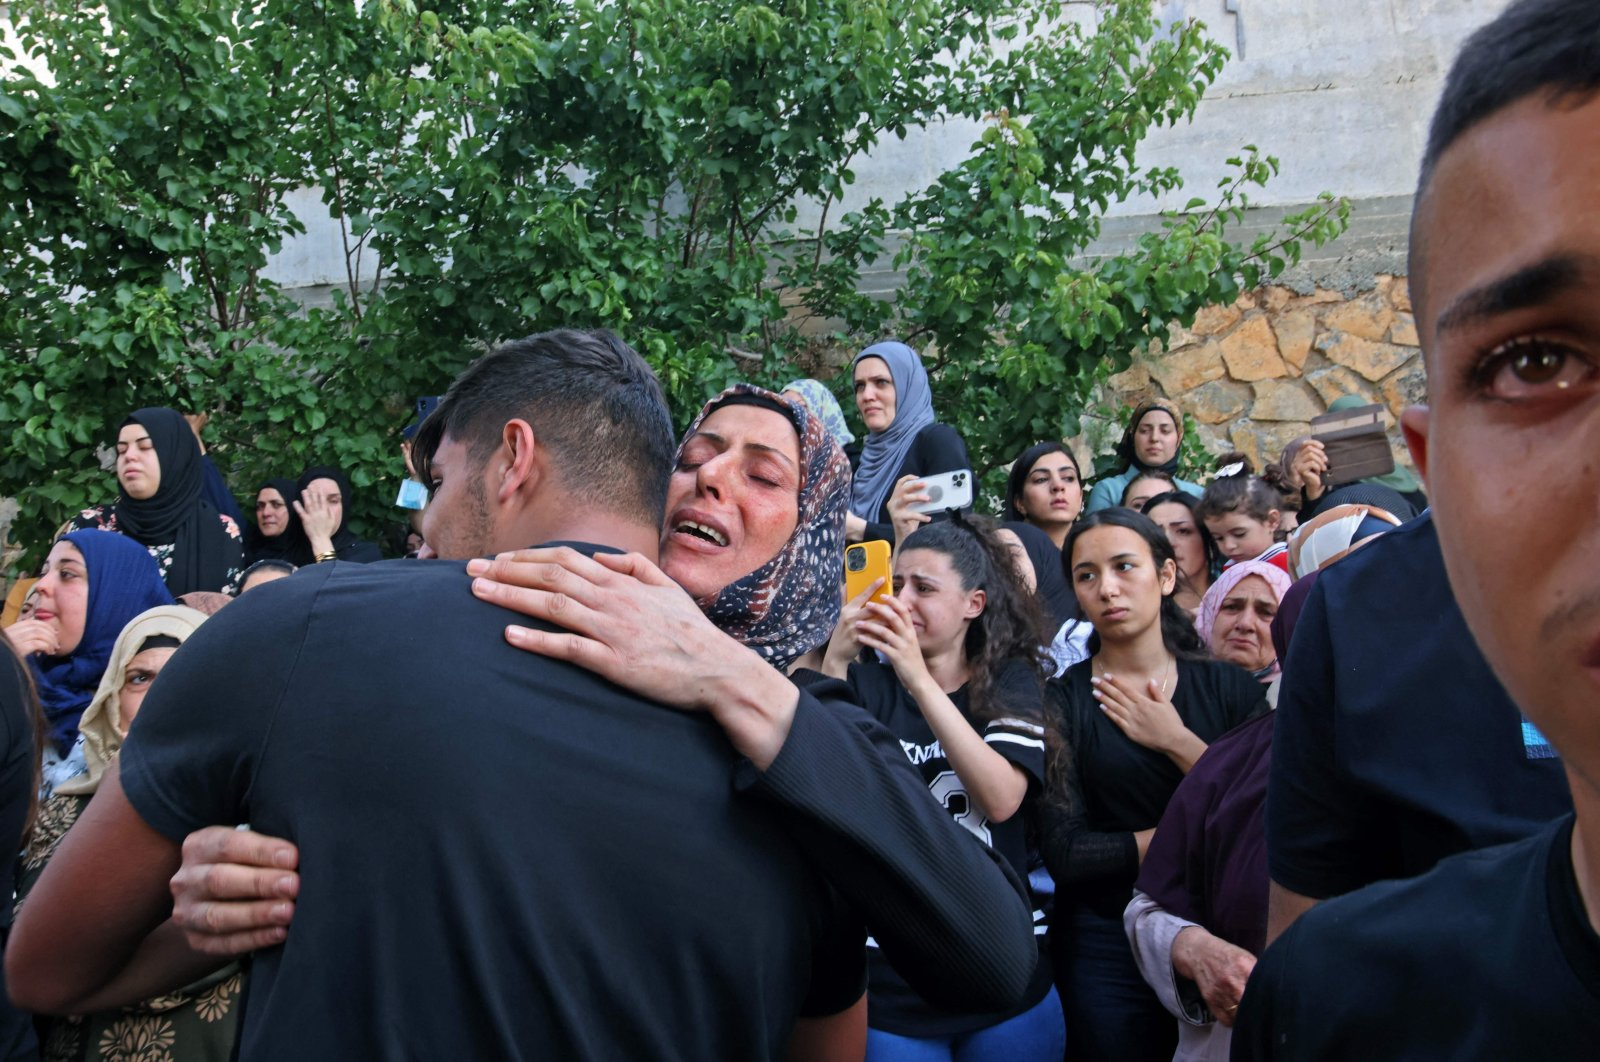 Mourners react during the funeral of Mohammad Kiwan, a 17-year-old Palestinian who succumbed to his wounds after being shot by Israeli forces, in Umm al-Fahm, northern Israel, May 20, 2021. (AFP Photo)